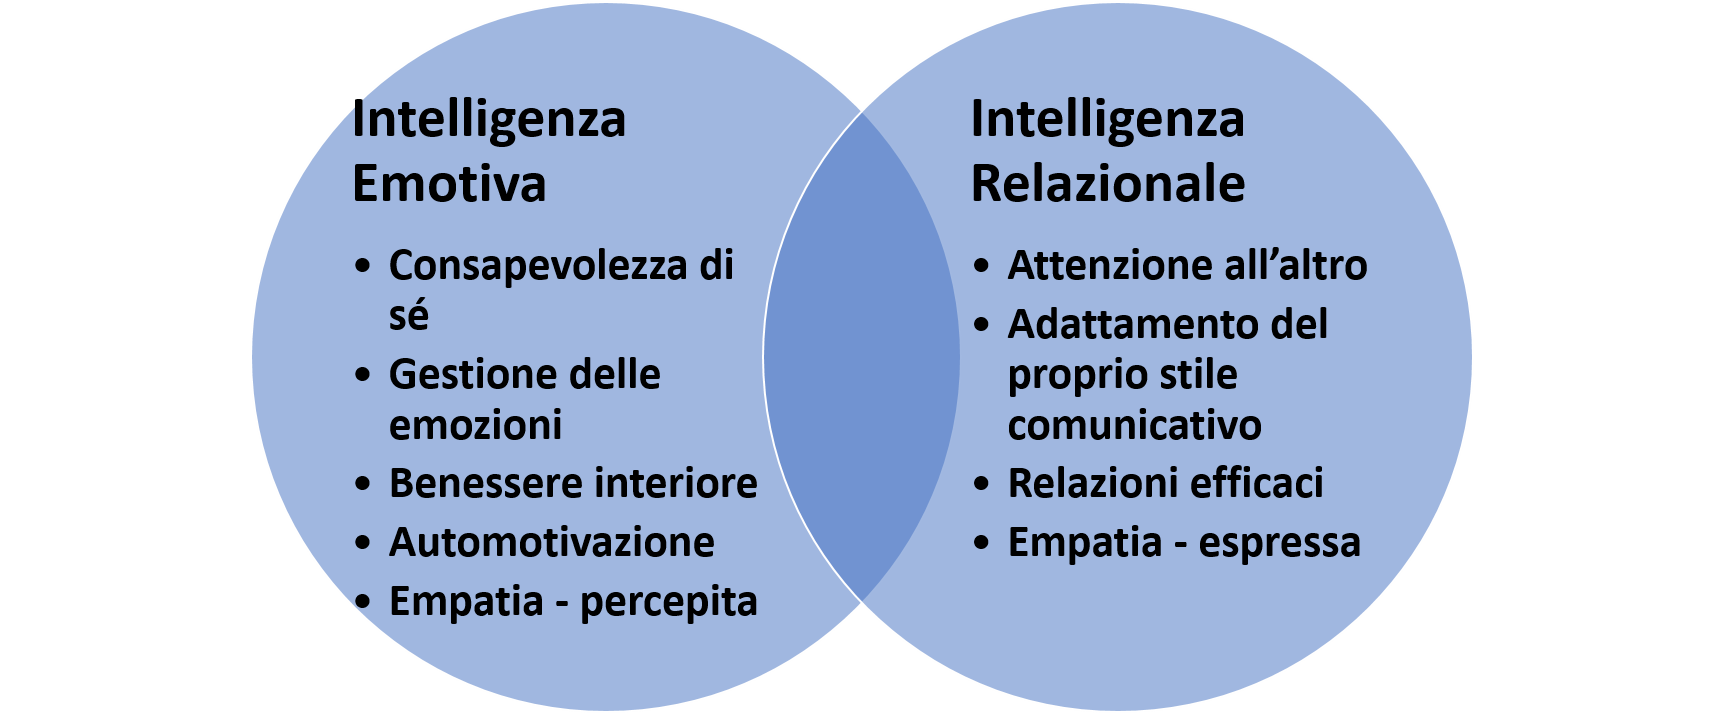 Intelligenza Relazionale ed Intelligenza Emotiva